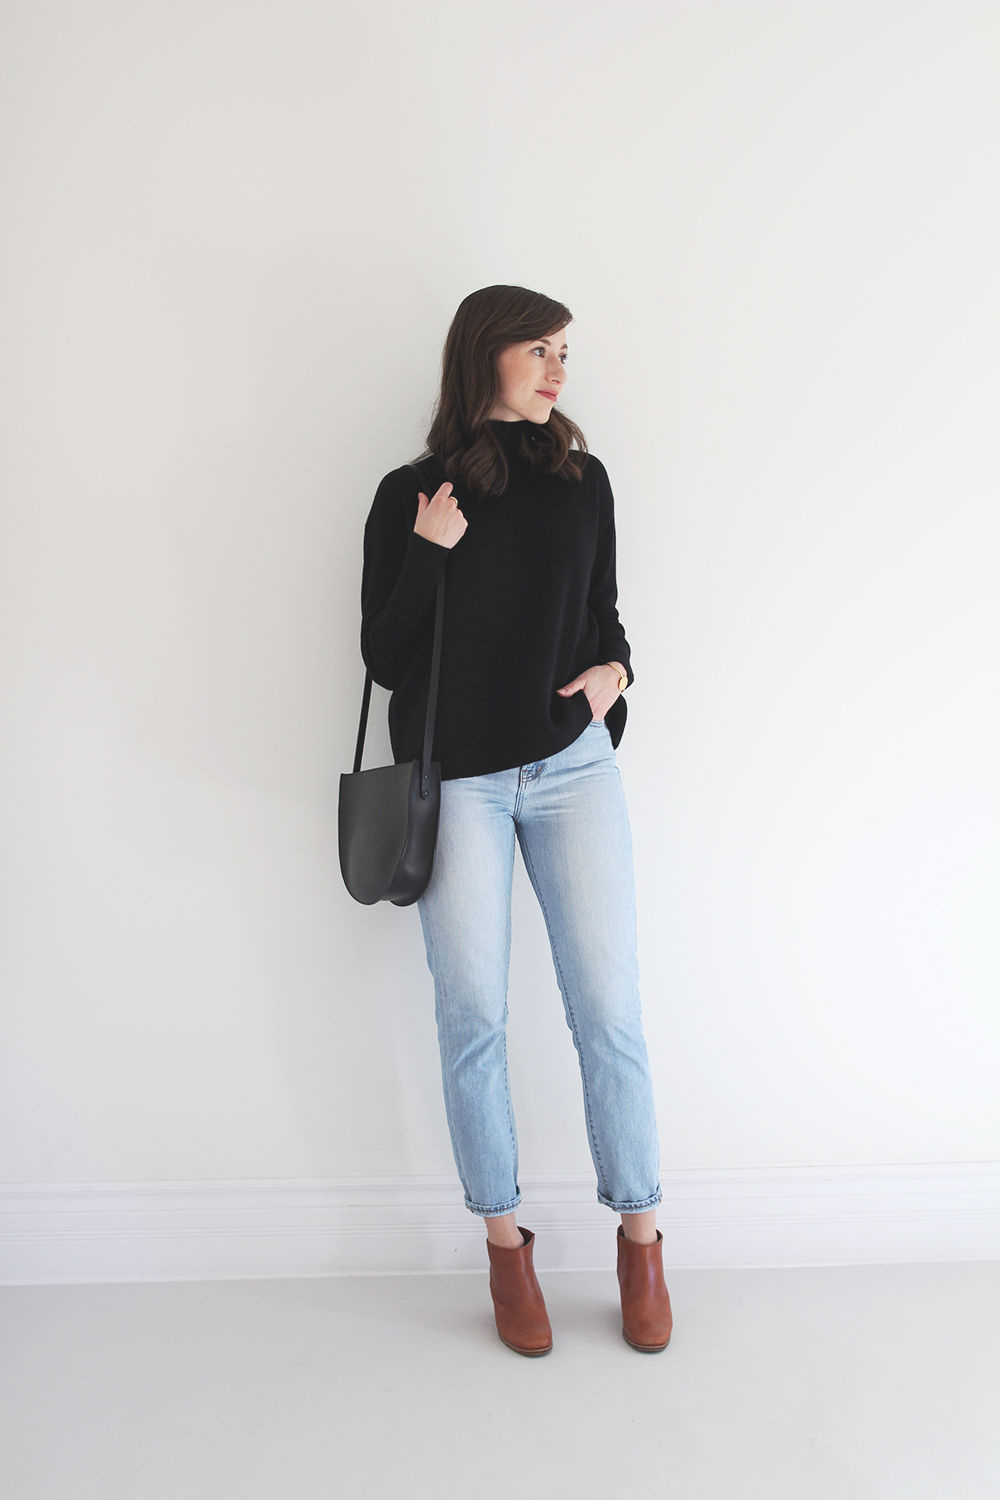 Style Bee - Thoughts On Gifted Goods